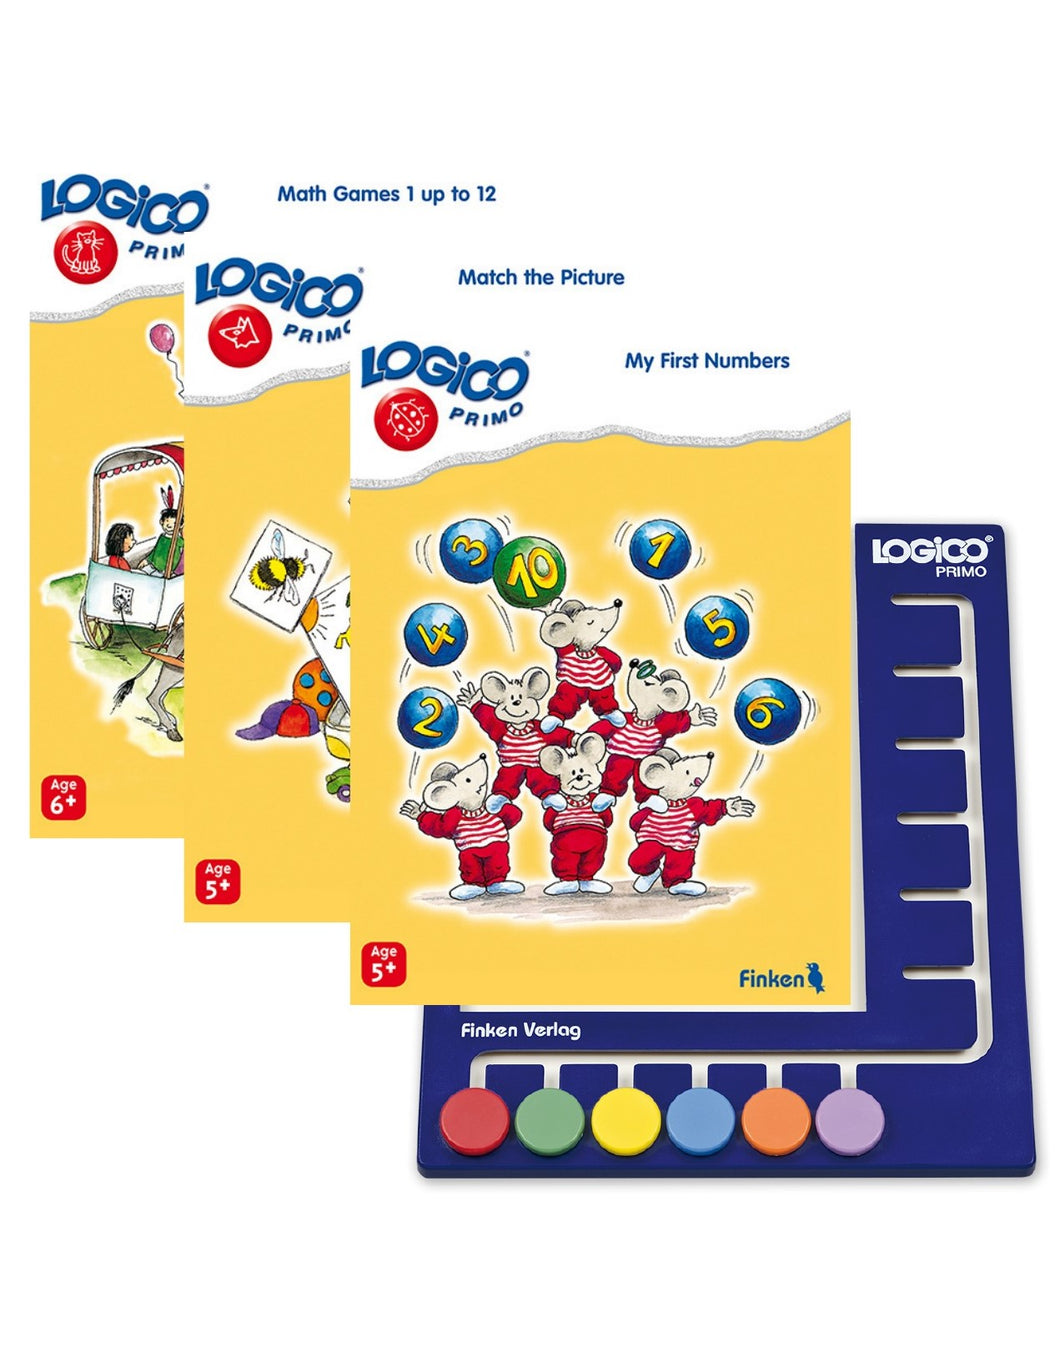 LOGICO Primo Starter Package: 3 books and 1 board (Ages 5-7)